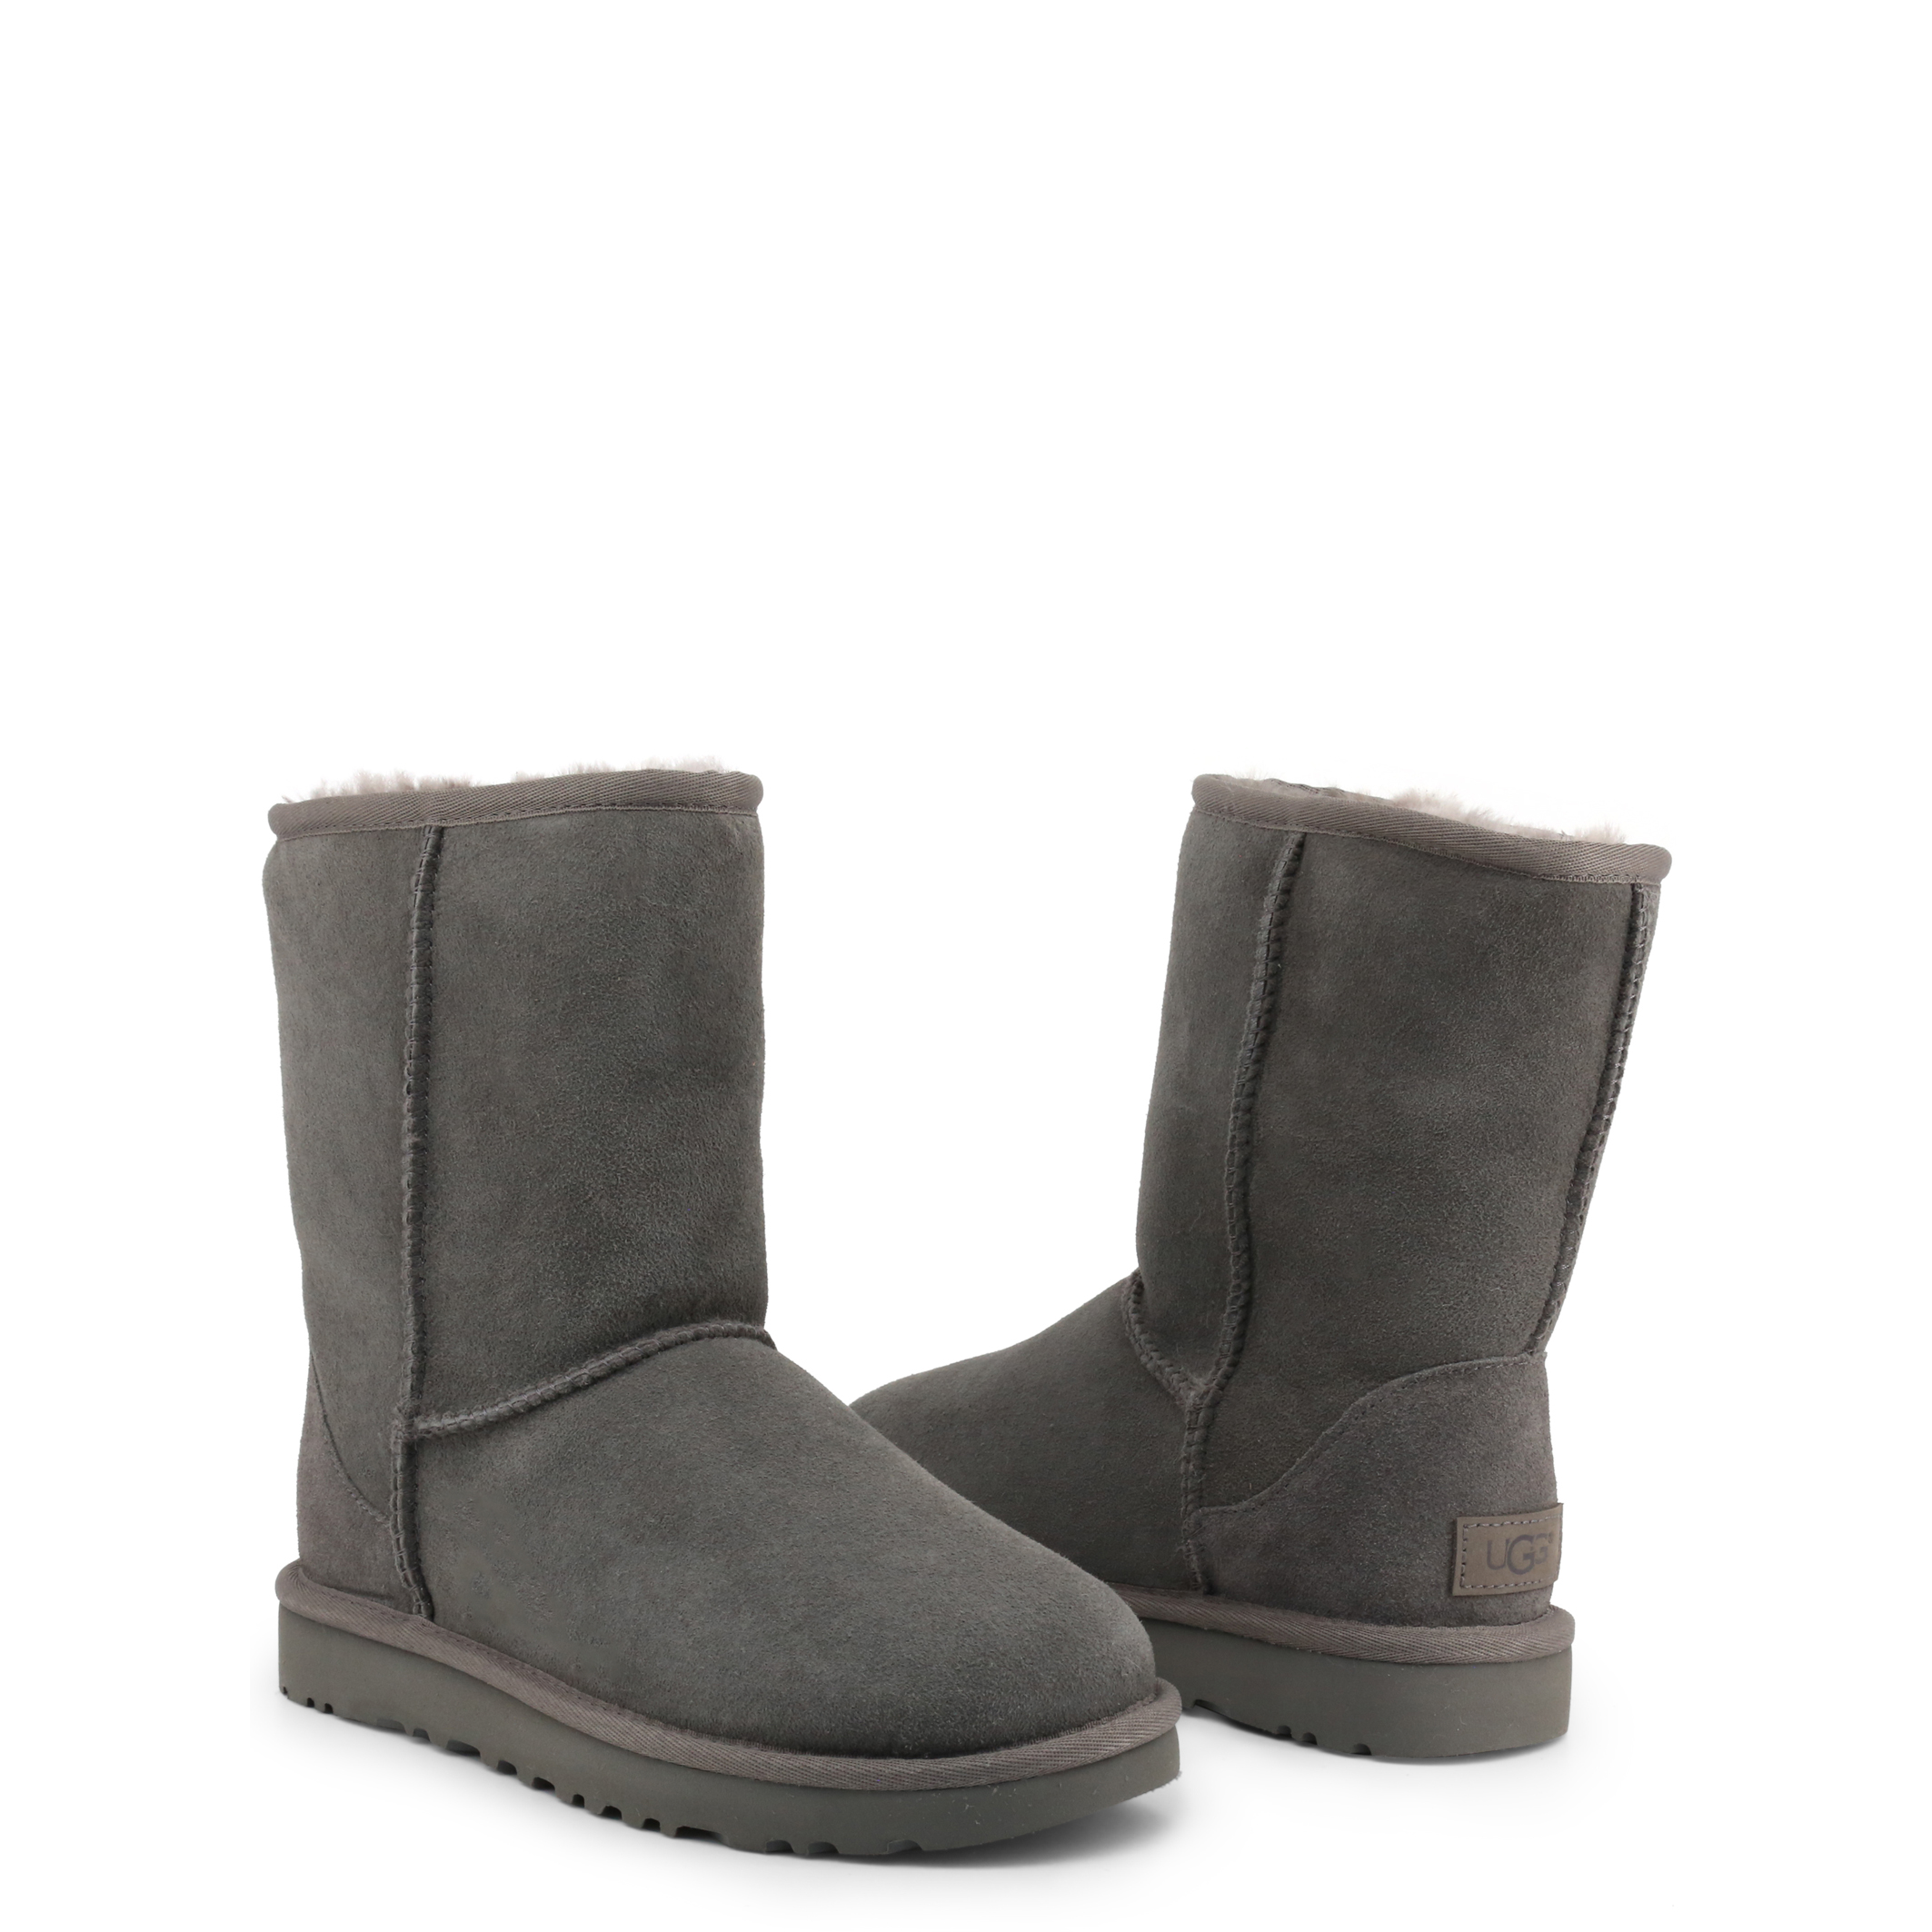 Chaussures  Ugg 1016223 grey